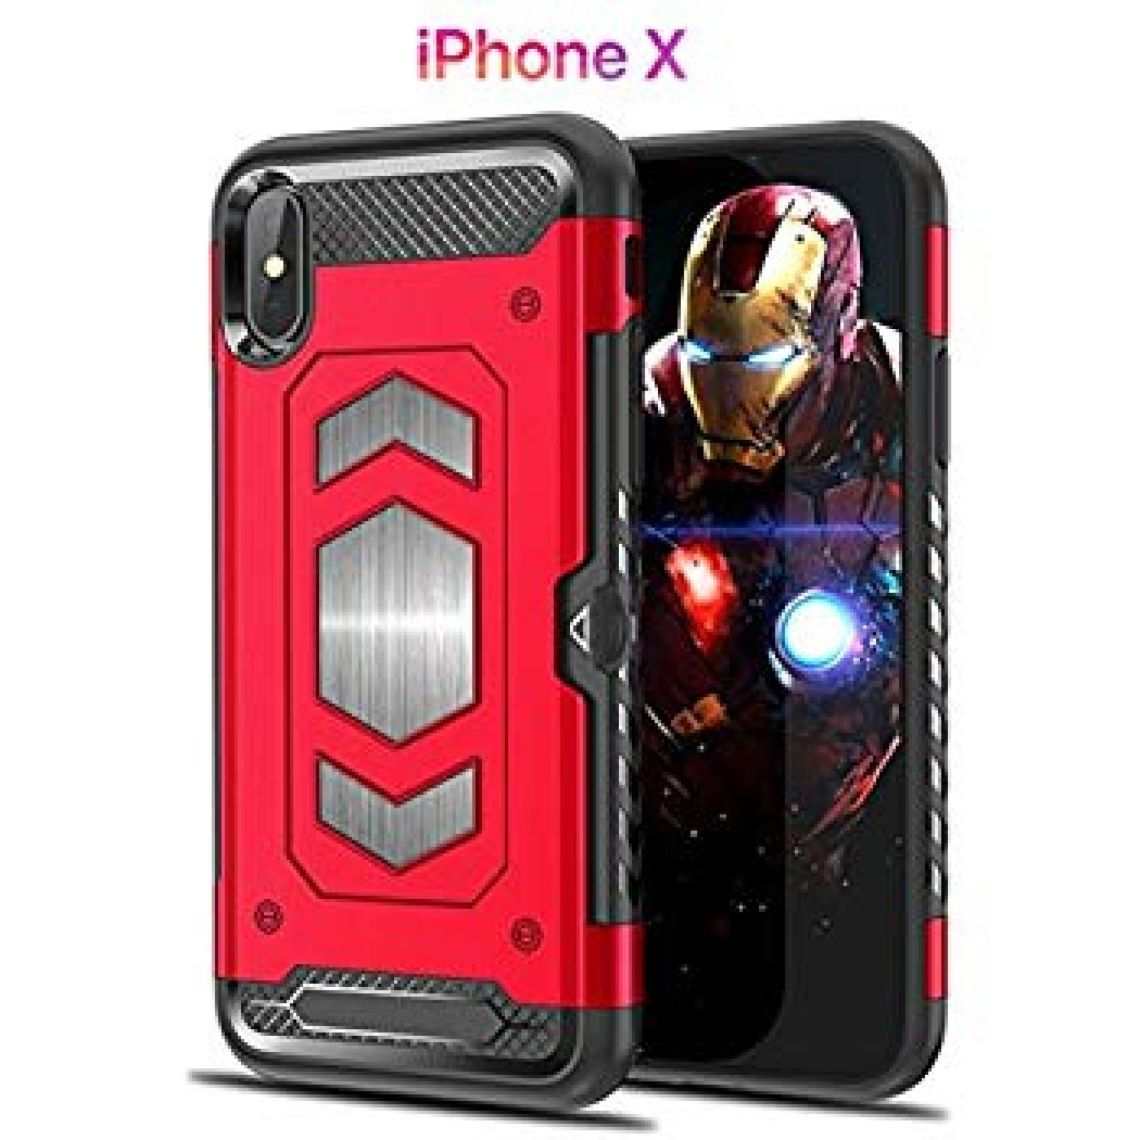 Amazon.com: Iphone X Case 3 in 1 with Magnetic Car Mount & Card Slot Holder || Robust & Protective Armor || Anti-scratch & Shockproof for Apple iPhone X: Cell Phones & Accessories